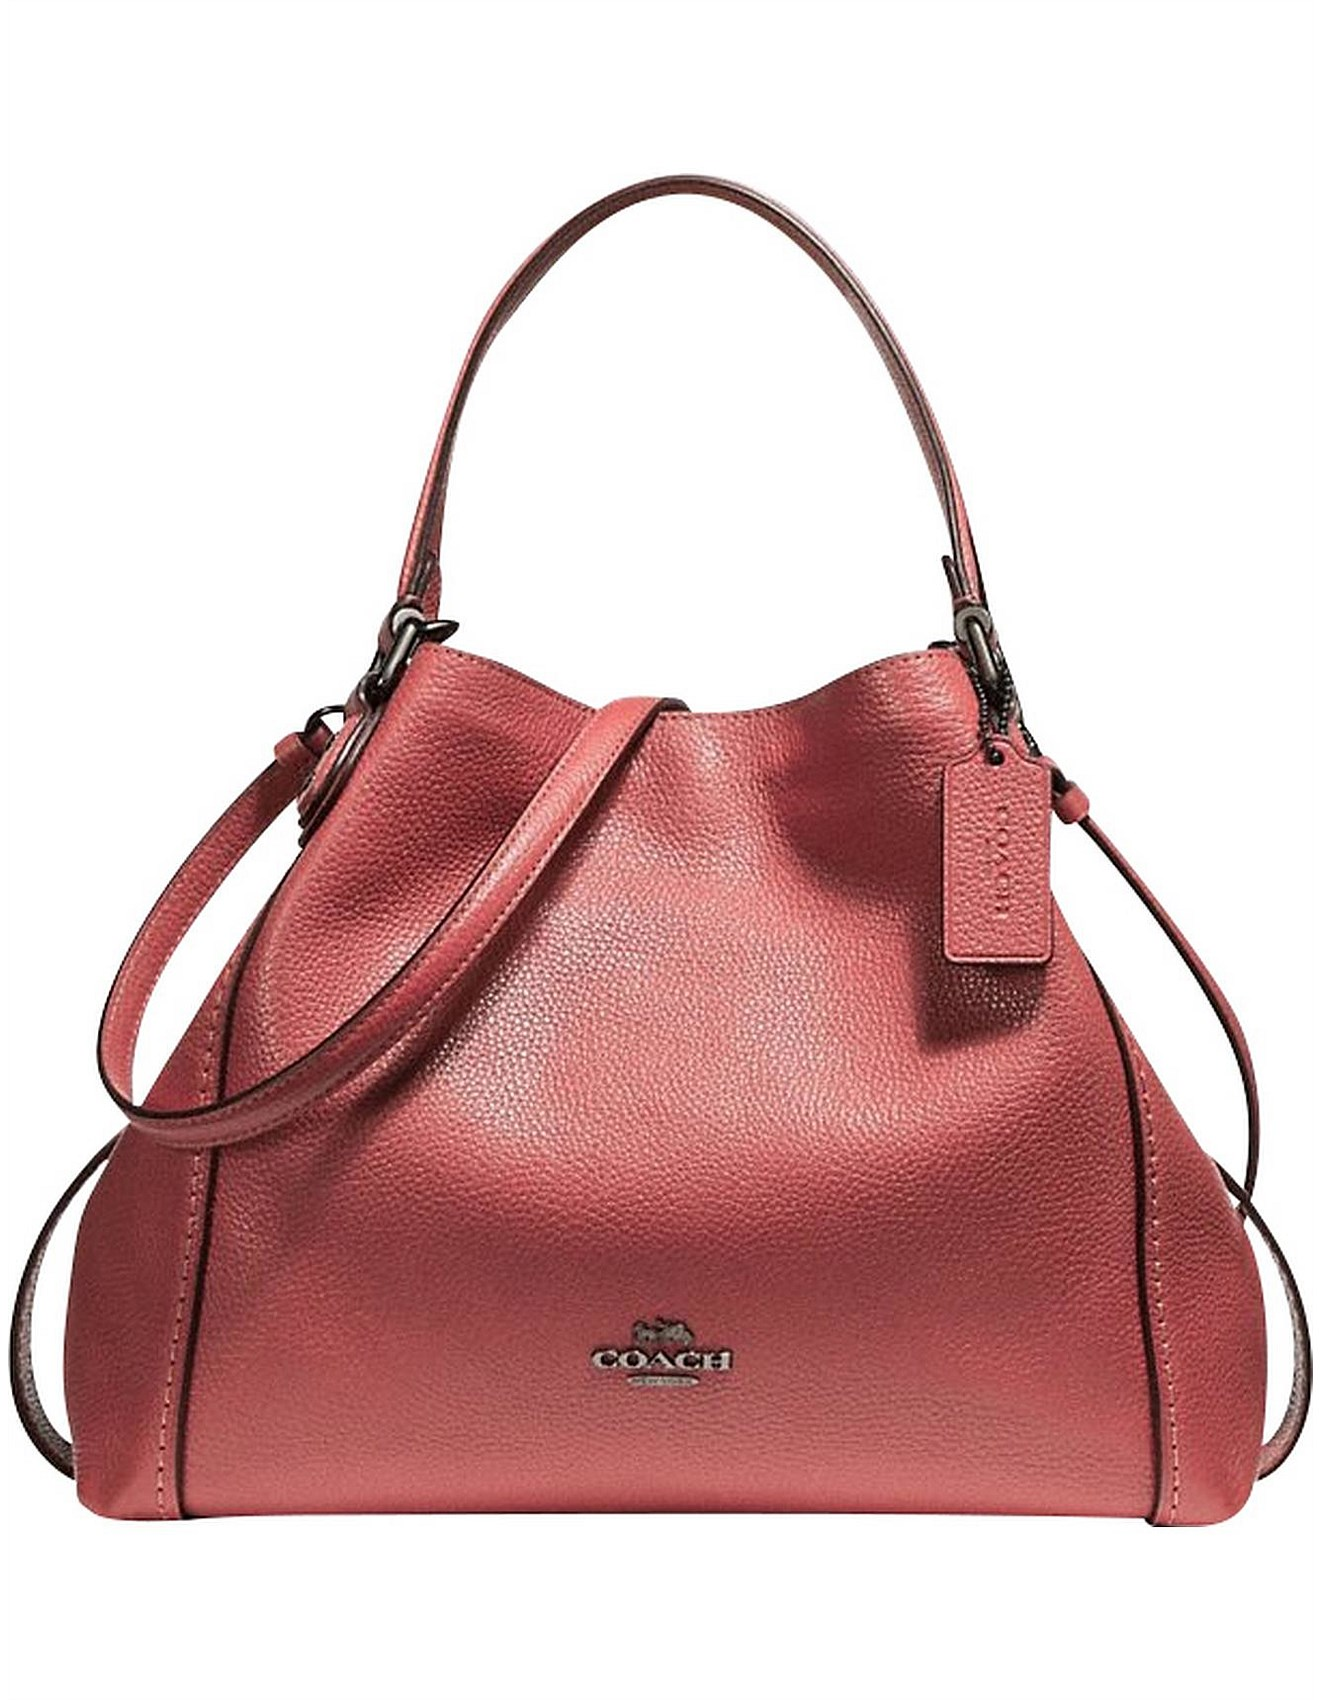 Women S Shoulder Bags Handbags Australia David Jones Polished Pebble Lthr E 28 Bag